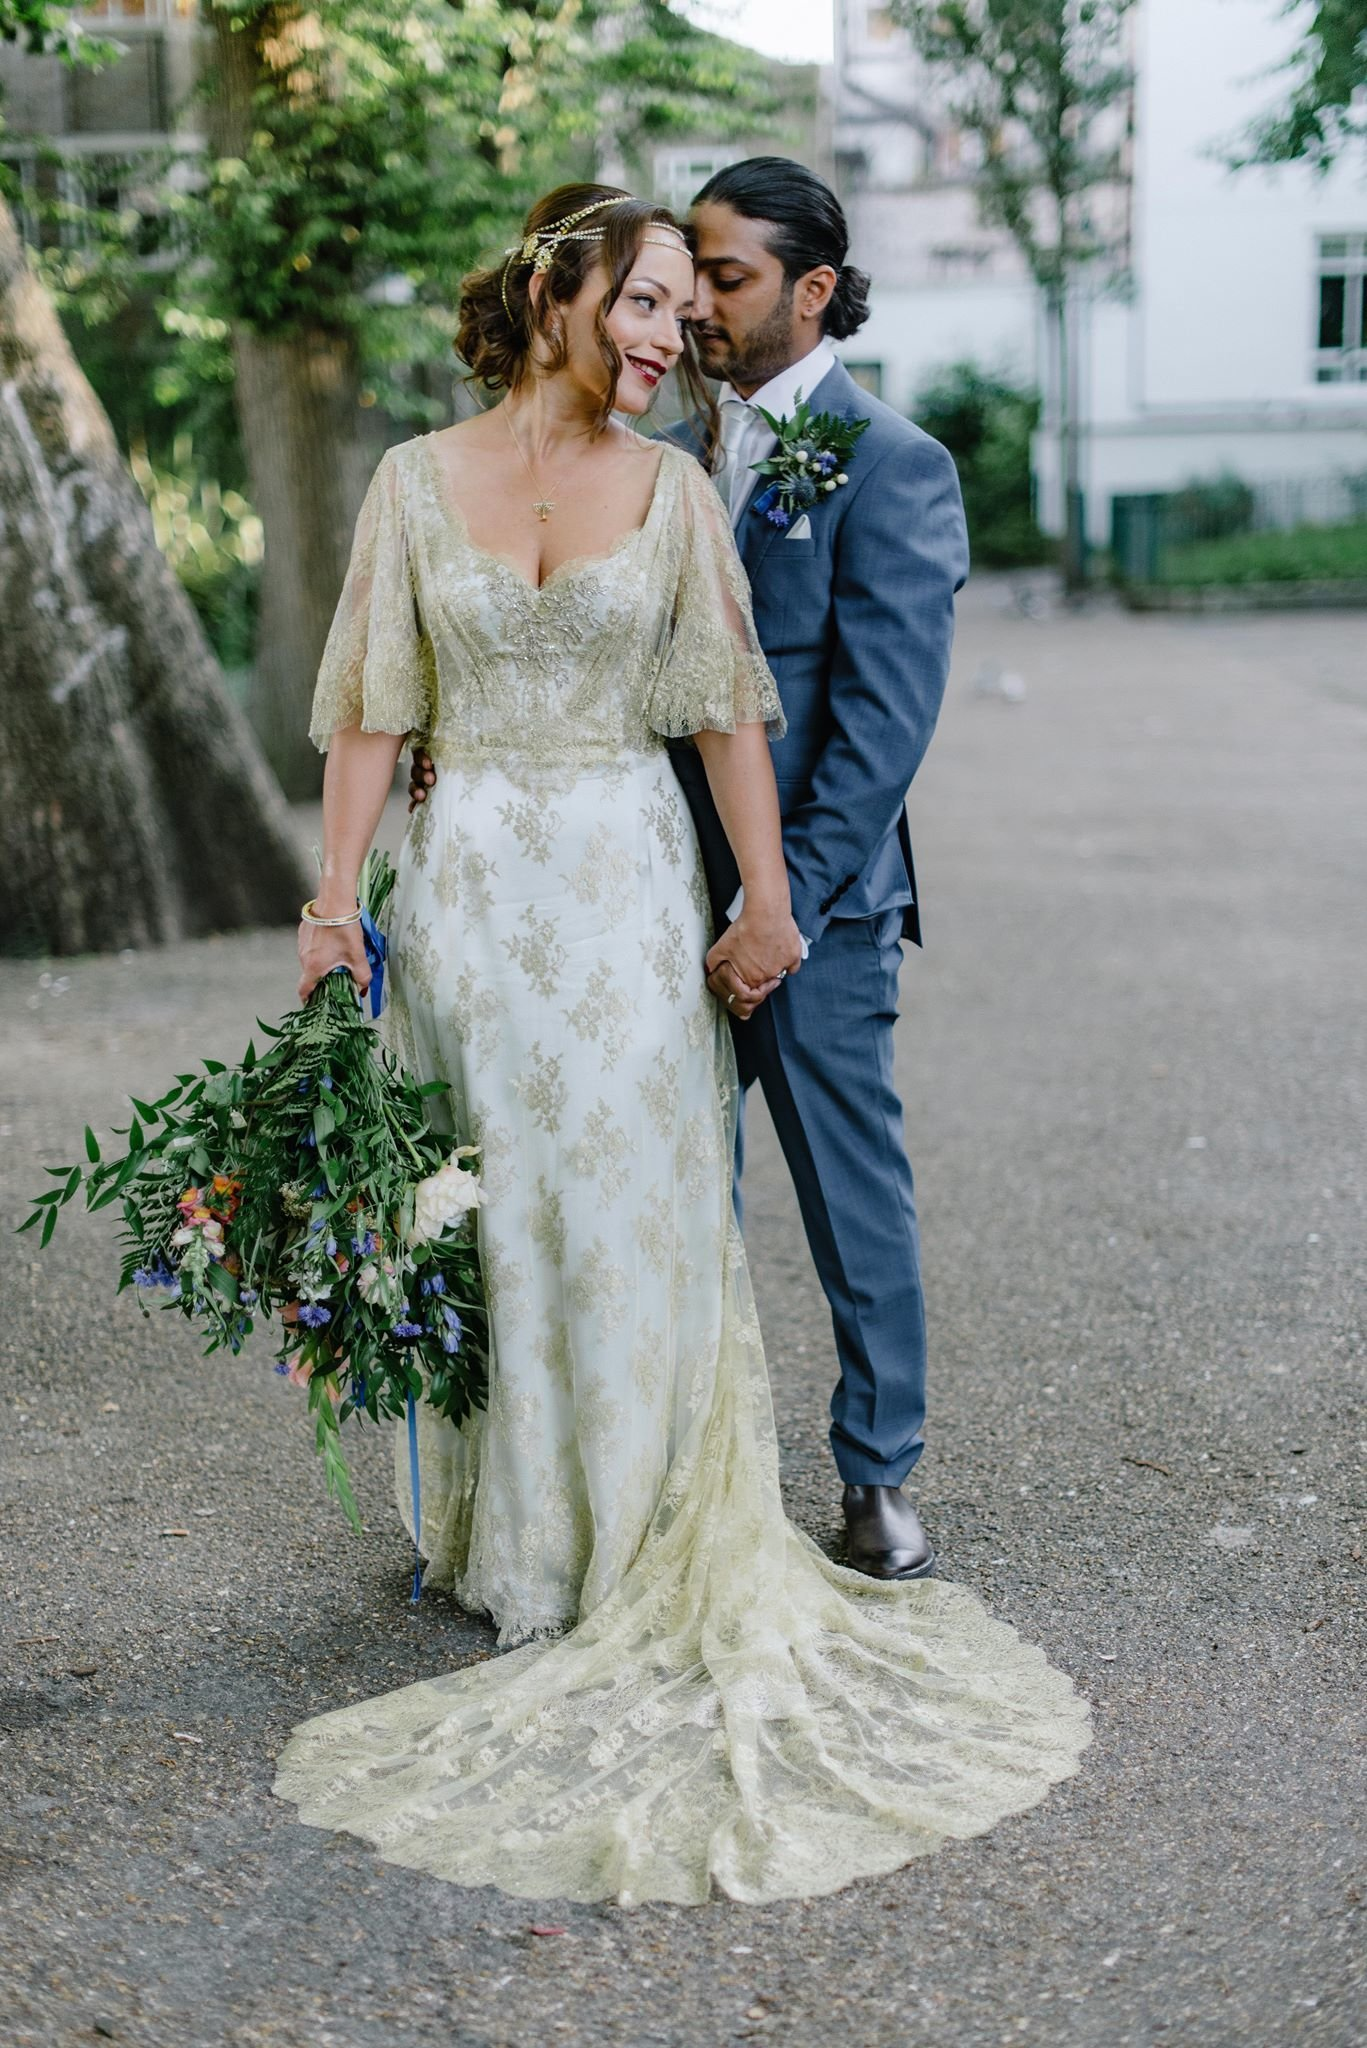 Anglo Indian fusion wedding blue and gold dress by Joanne Fleming Design, photo by Jacqui McSweeney